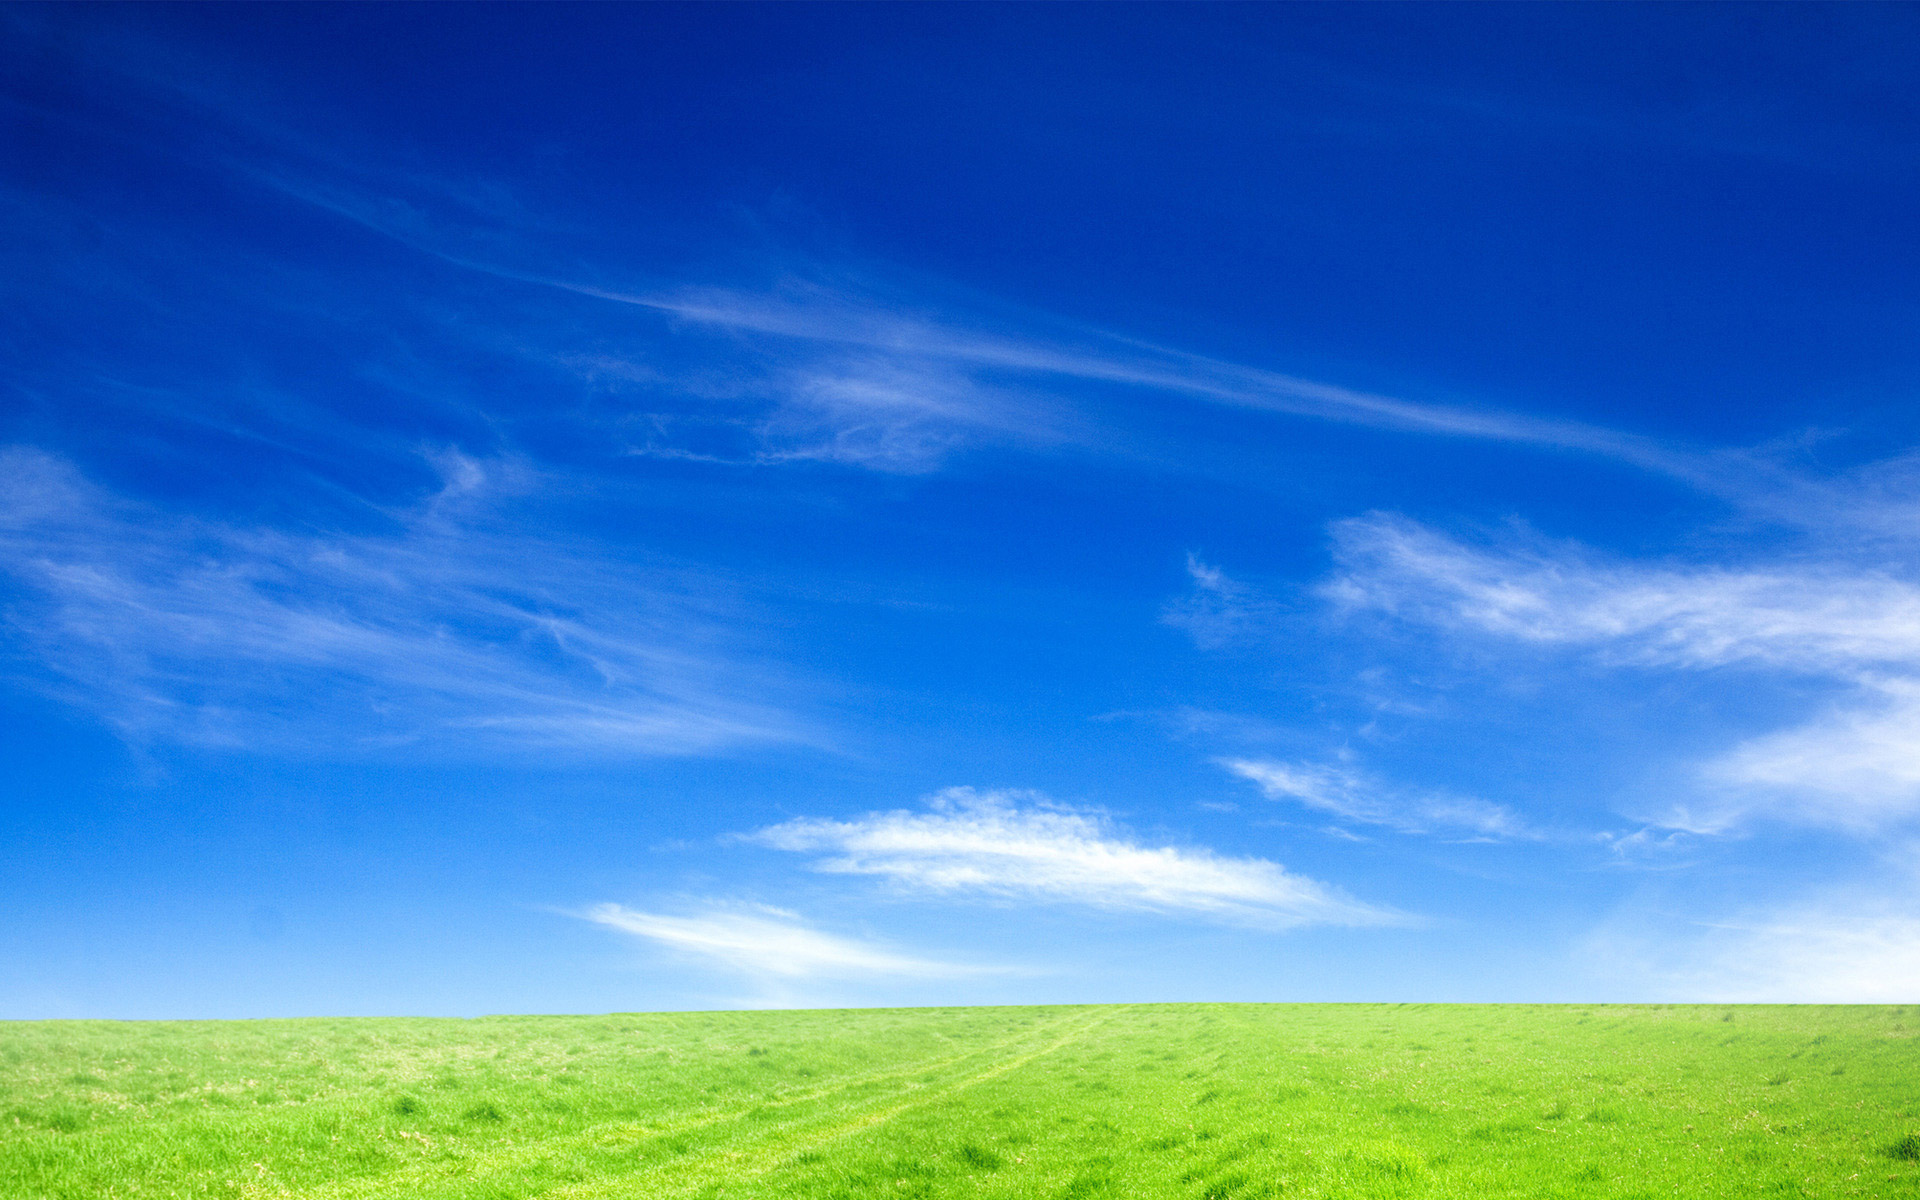 Blue Sky and Green Grass Wallpapers HD Wallpapers 1920x1200